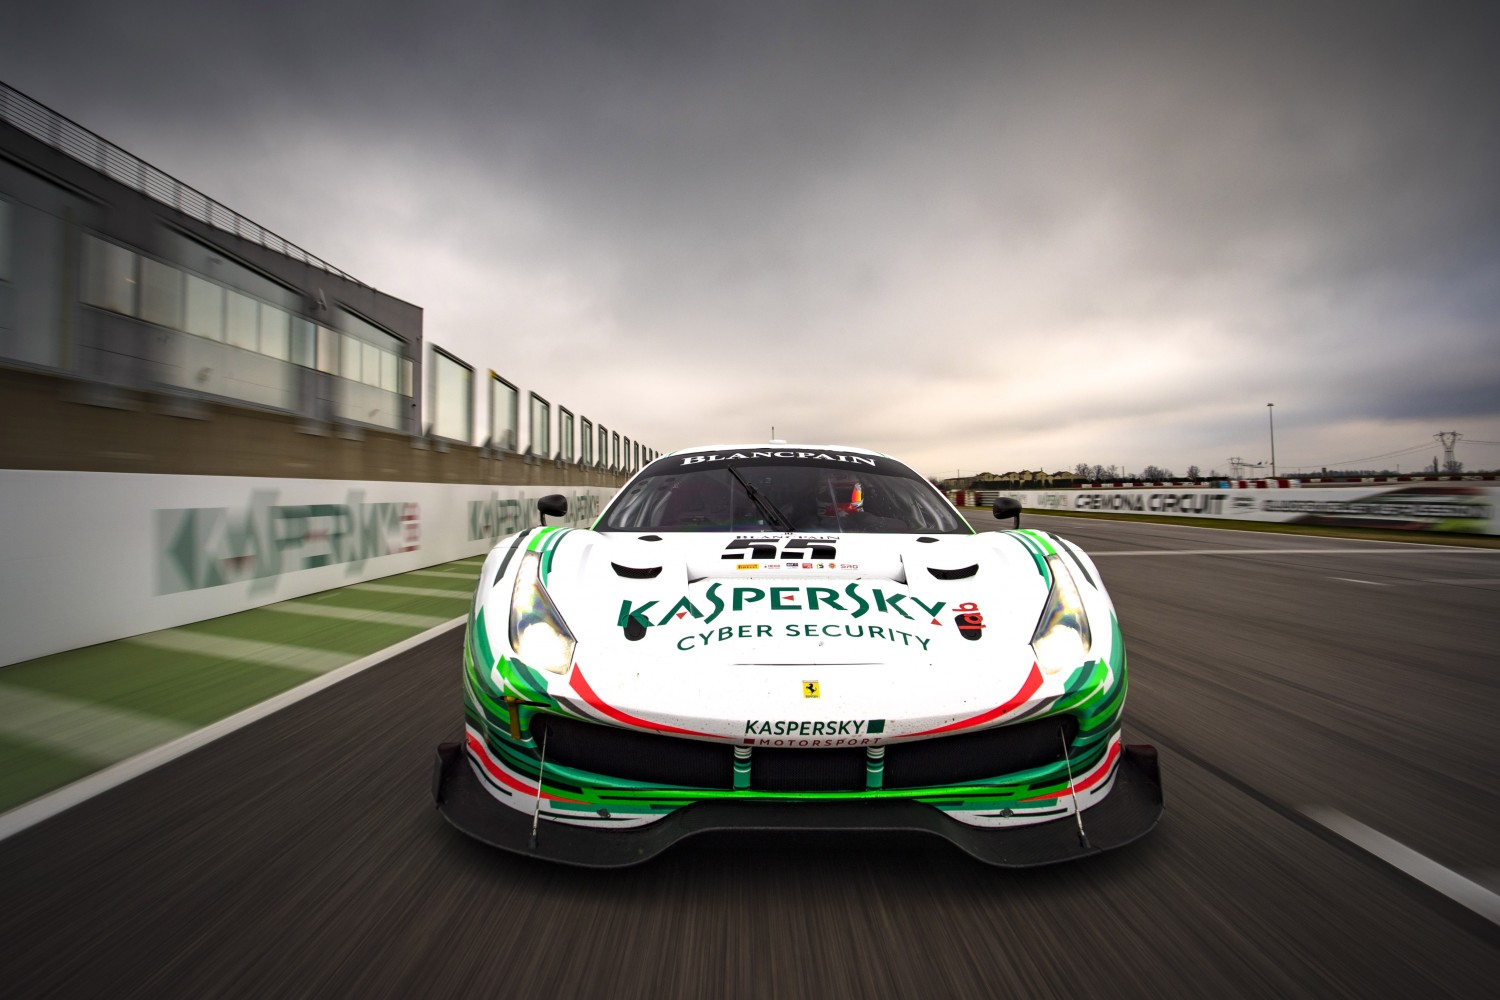 Ferrari ace Calado joins Fisichella and Cioci at Kaspersky Motorsport for Blancpain GT Series